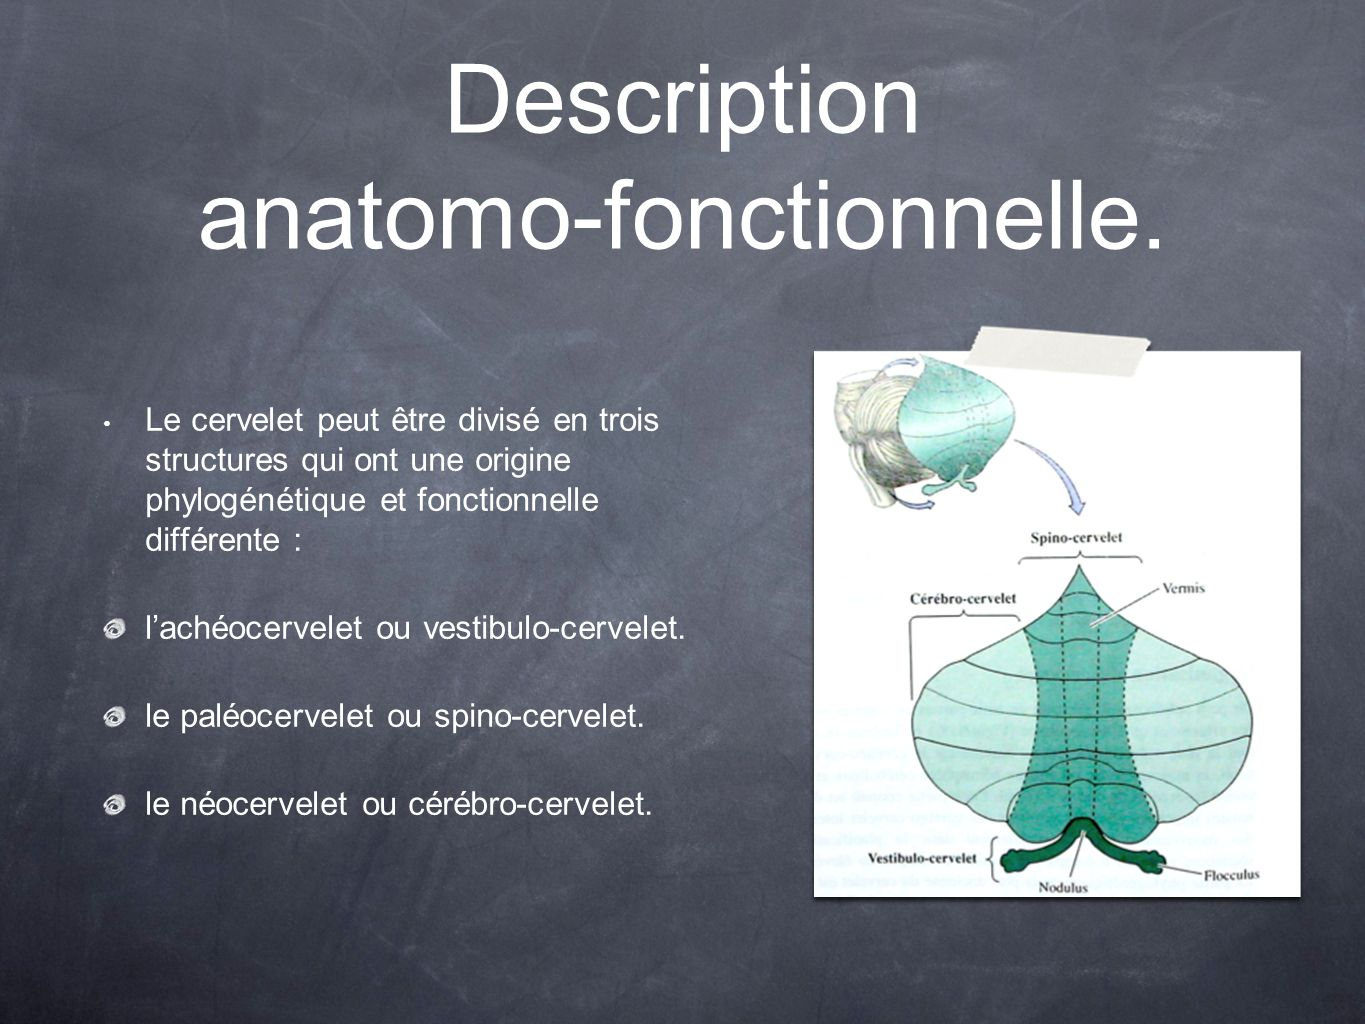 Description anatomo-fonctionnelle.